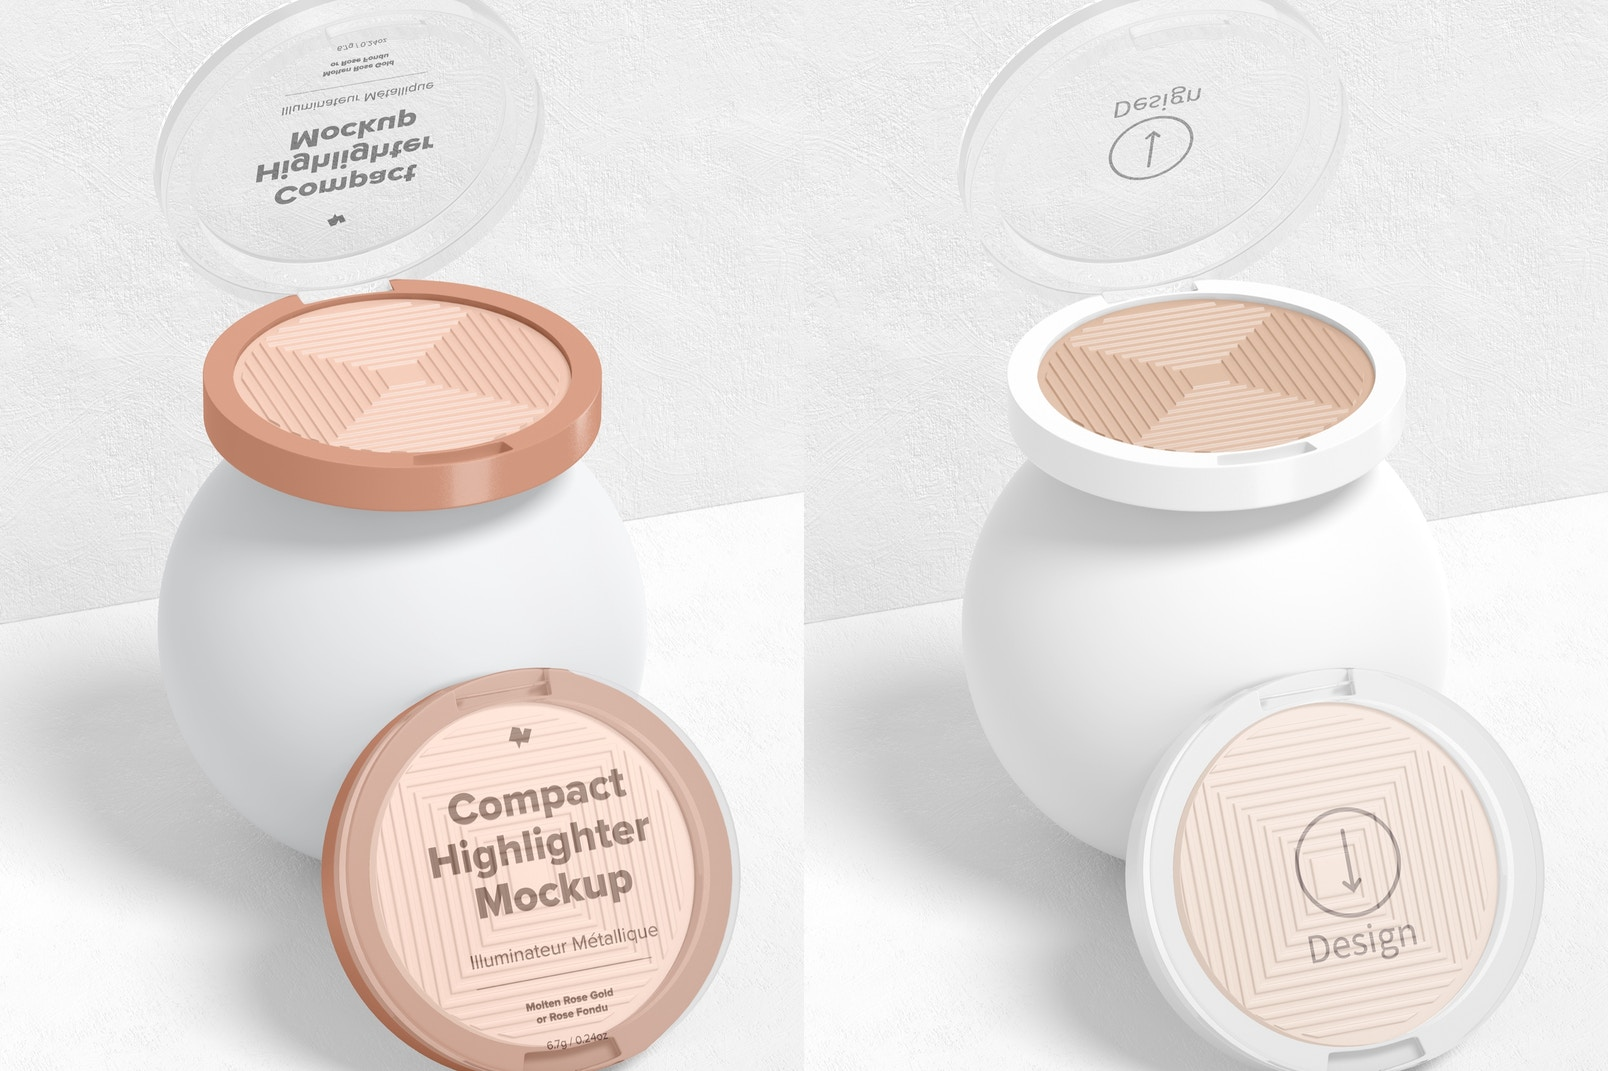 Compact Highlighter Packaging Mockup, Opened and Closed